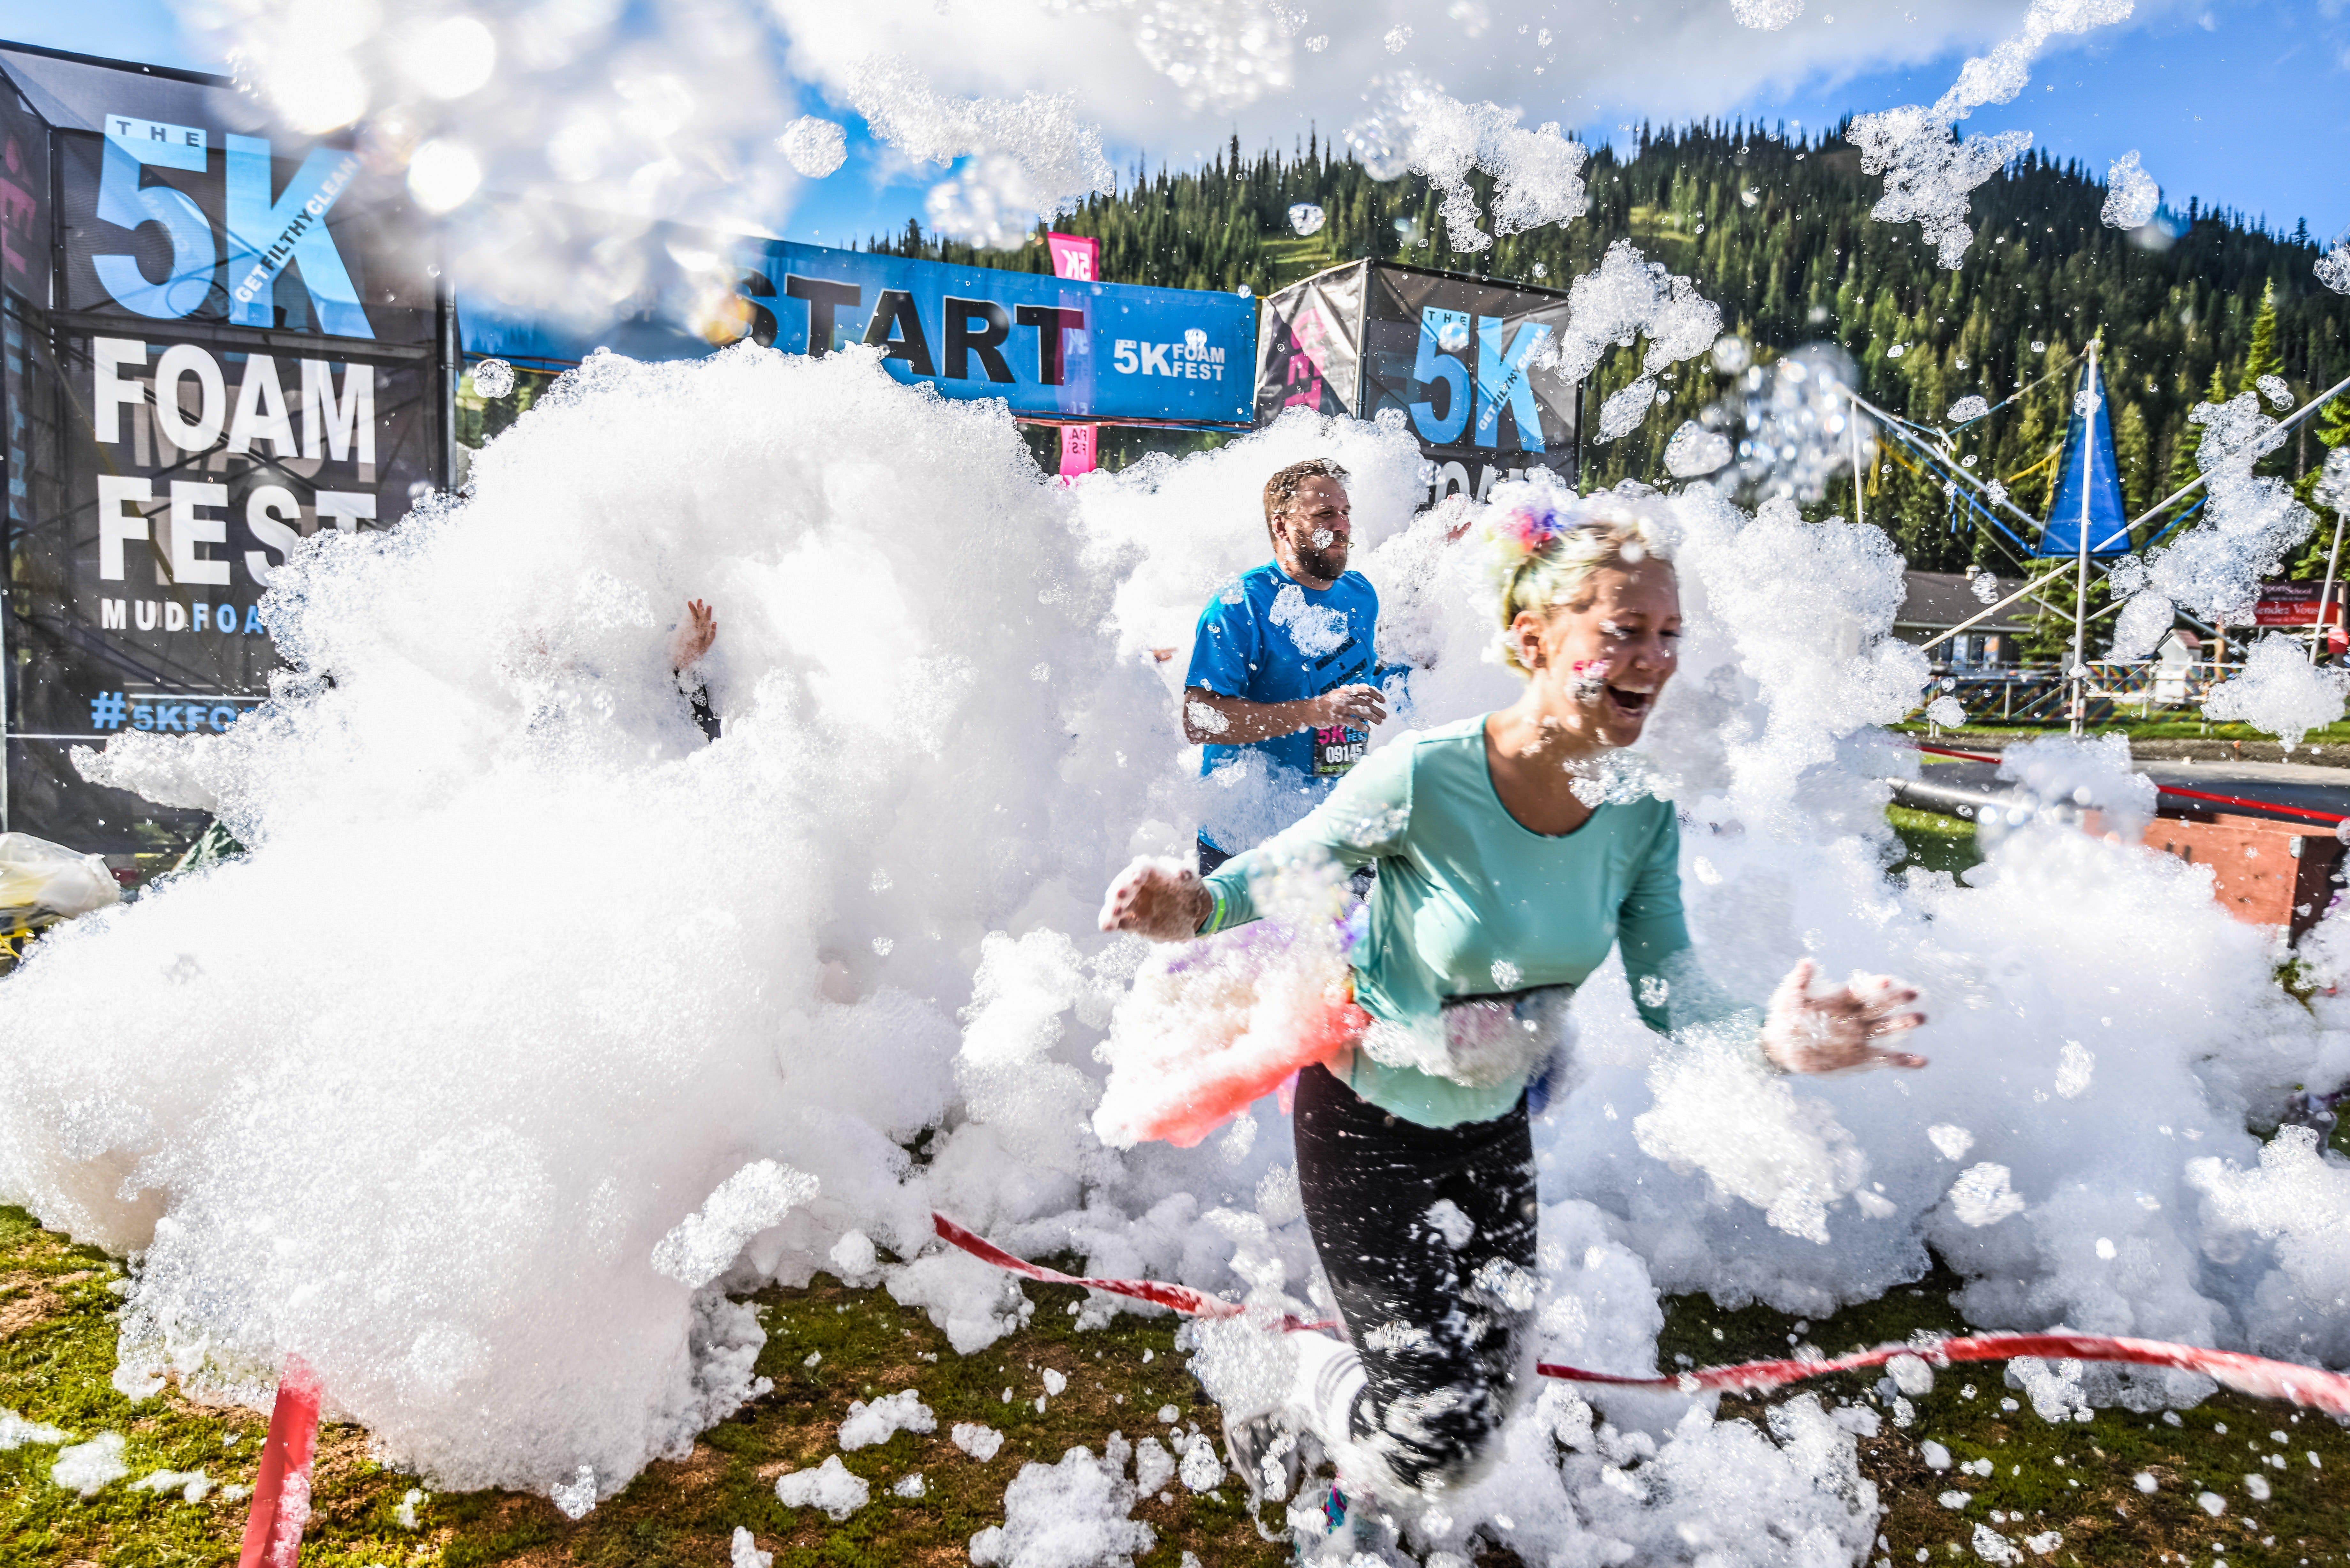 The 5K Foam Fest - Perth - Tourism Canberra